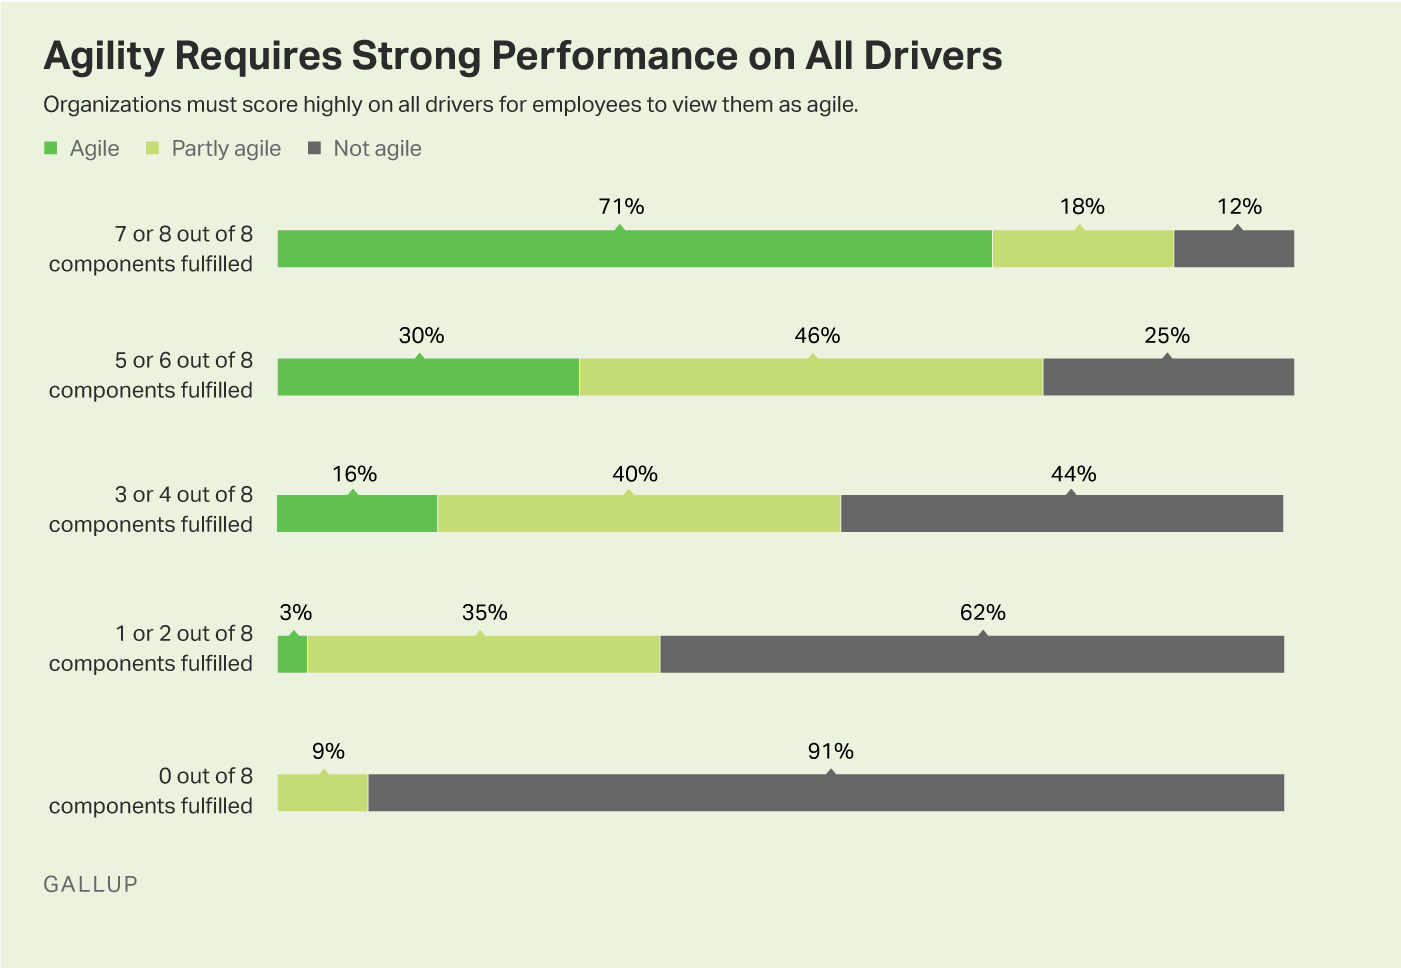 Graphic: Organizations Must Score High on All Drivers for Employees to View Them as Agile.